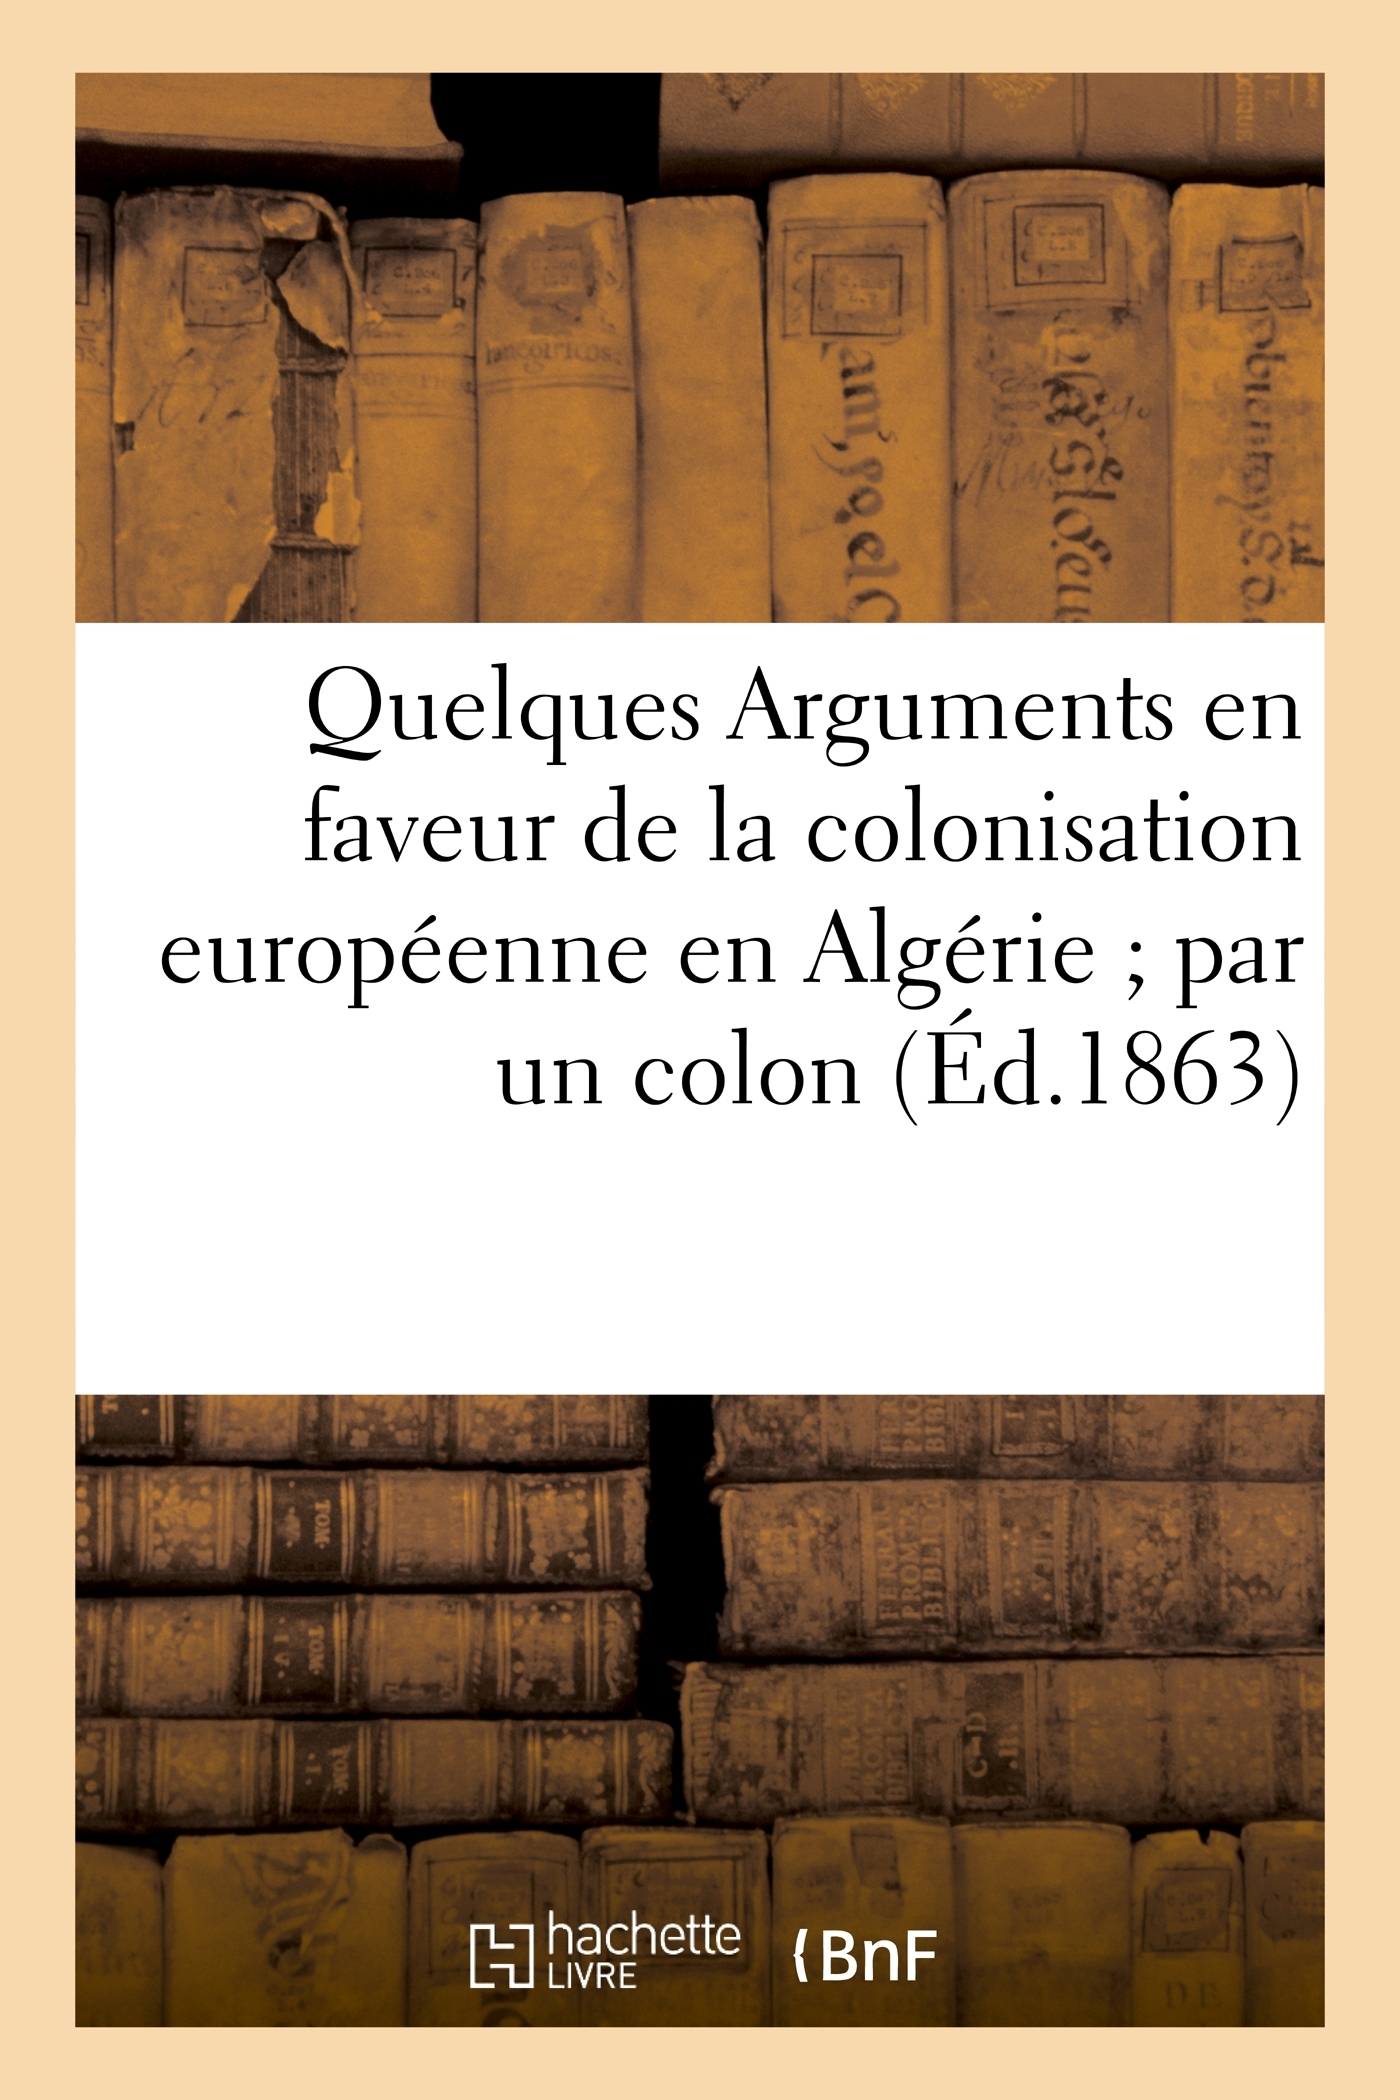 QUELQUES ARGUMENTS EN FAVEUR DE LA COLONISATION EUROPEENNE EN ALGERIE PAR UN COLON